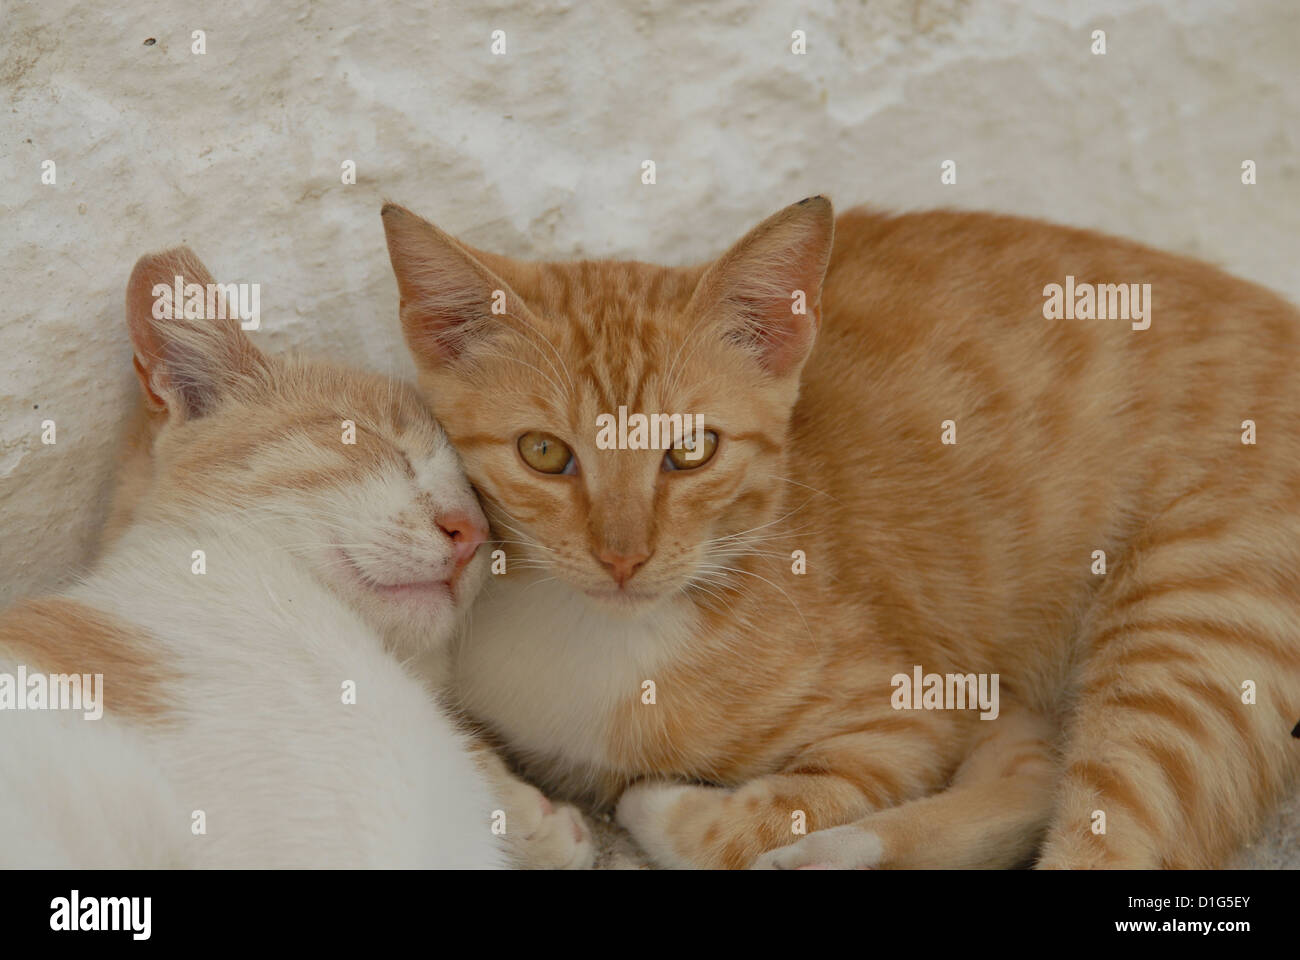 two kittens, Red-Tabby-White, resting side by side, cuddle up together, Greece, Dodecanese Island, Non-pedigree - Stock Image